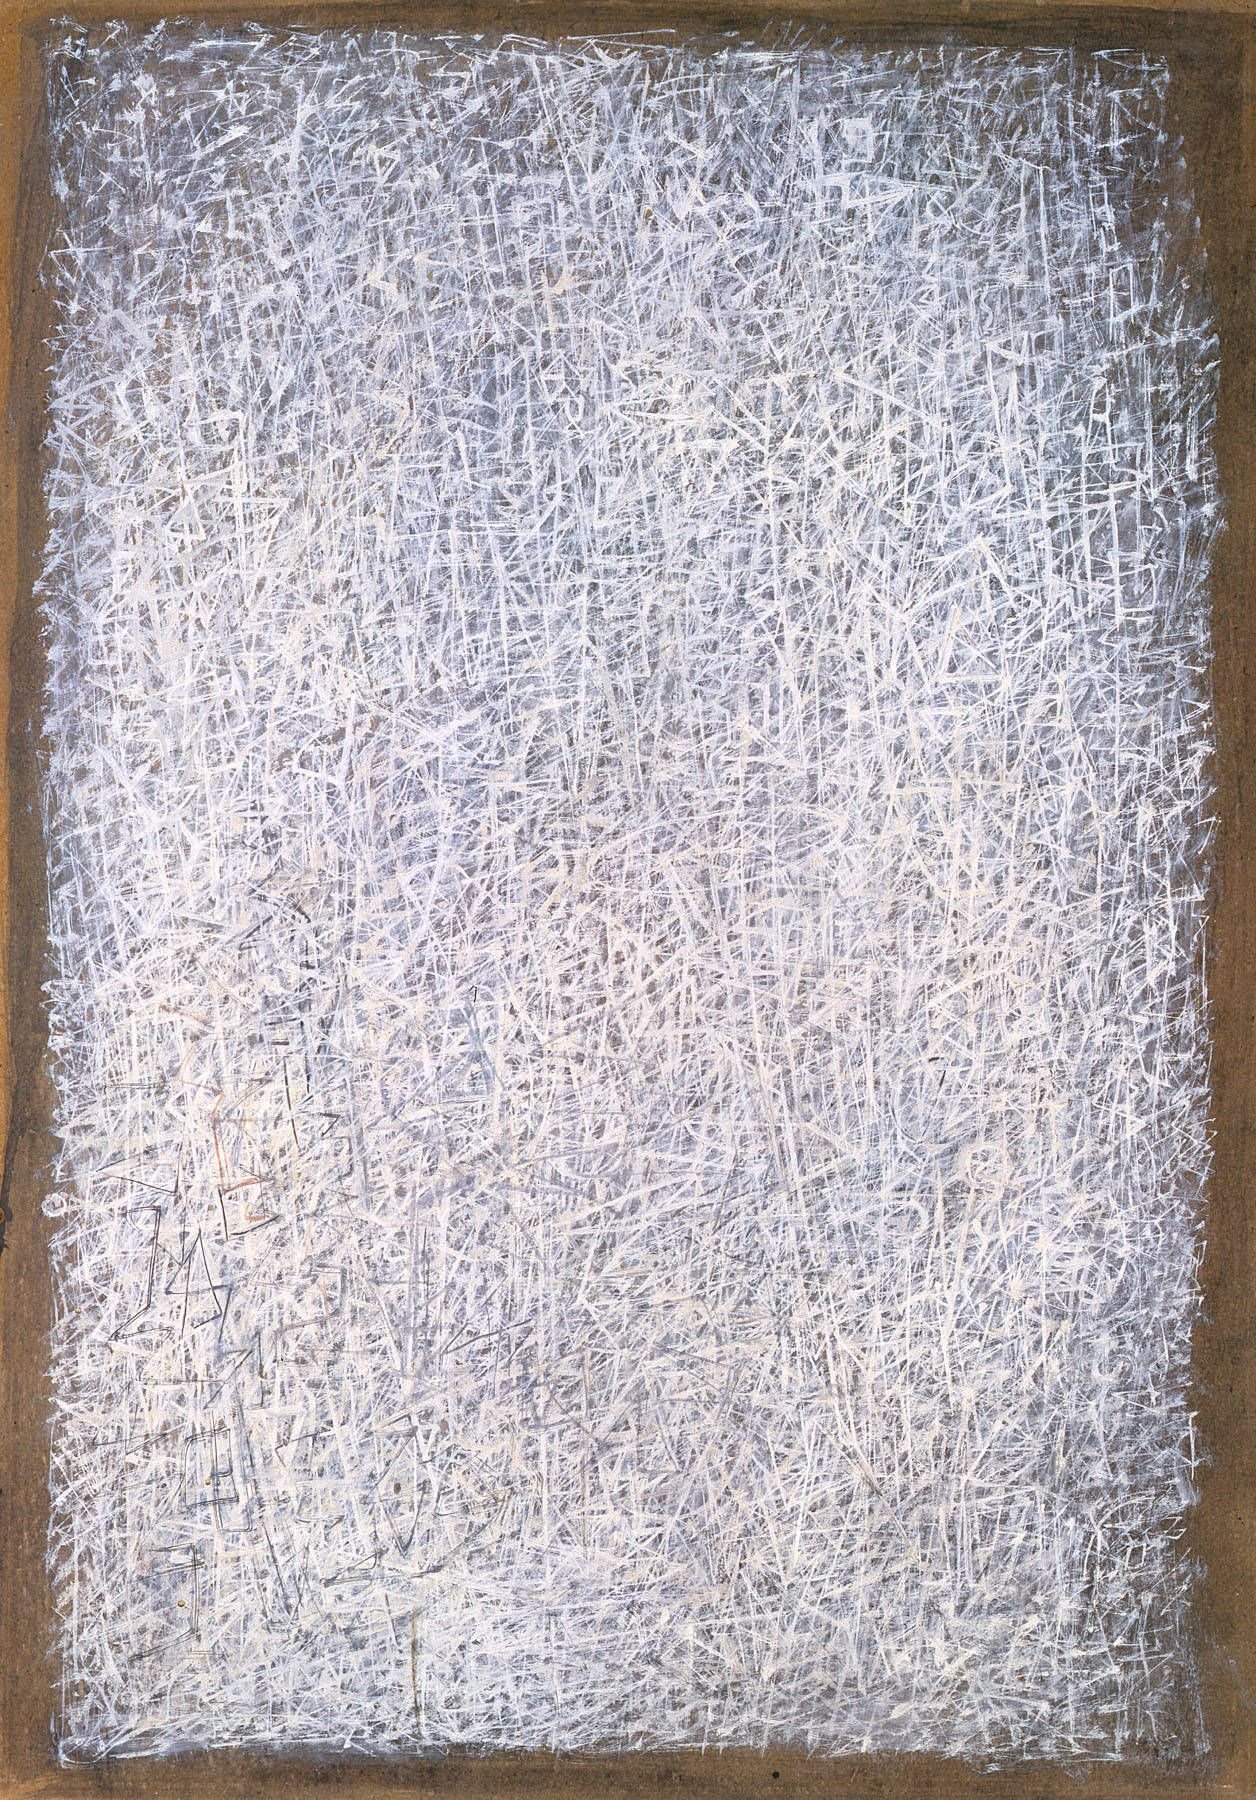 Mark Tobey,1957  Sumi Ink on Paper